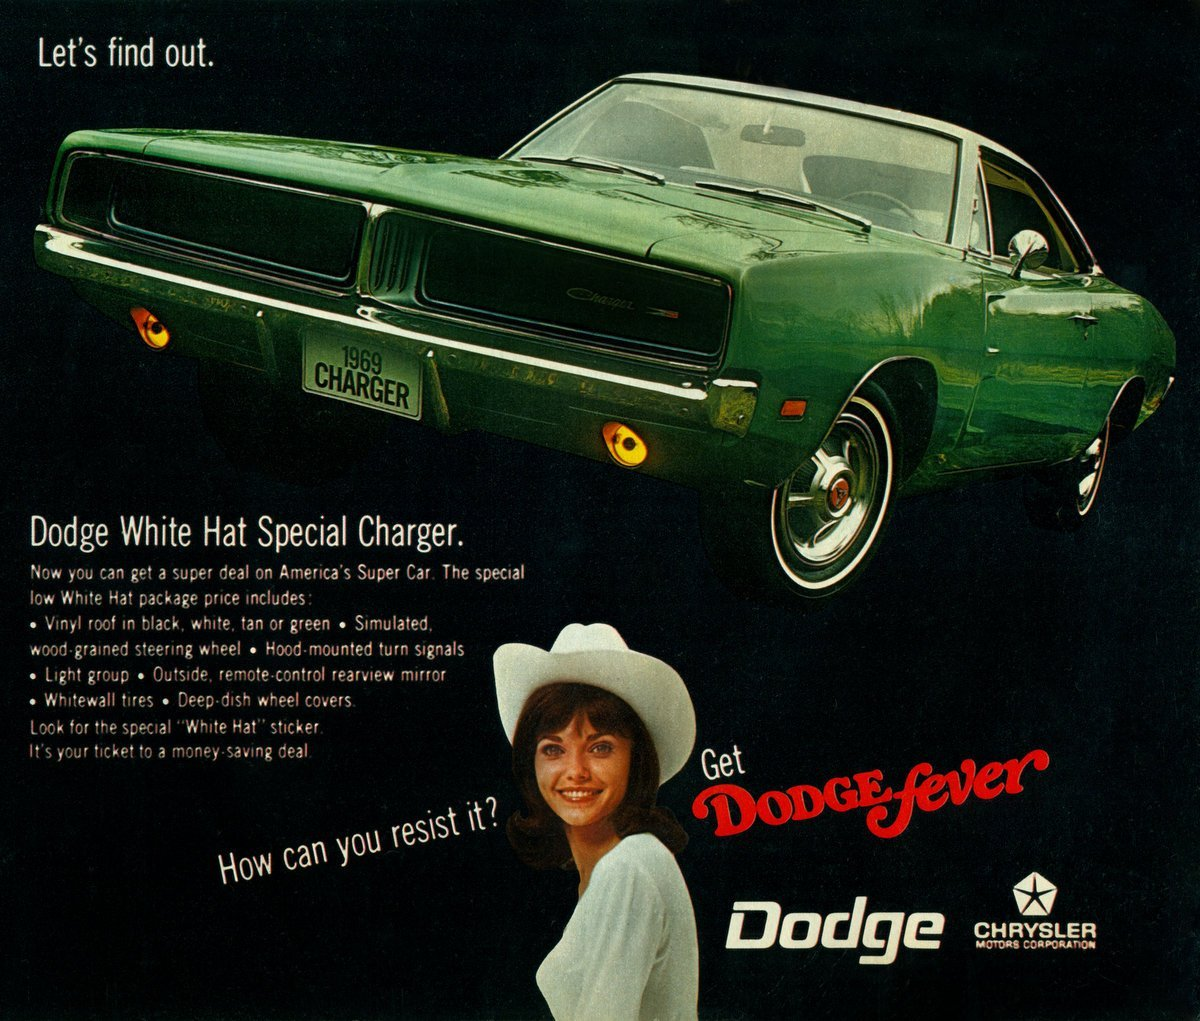 1969 Dodge White Hat Special Charger car